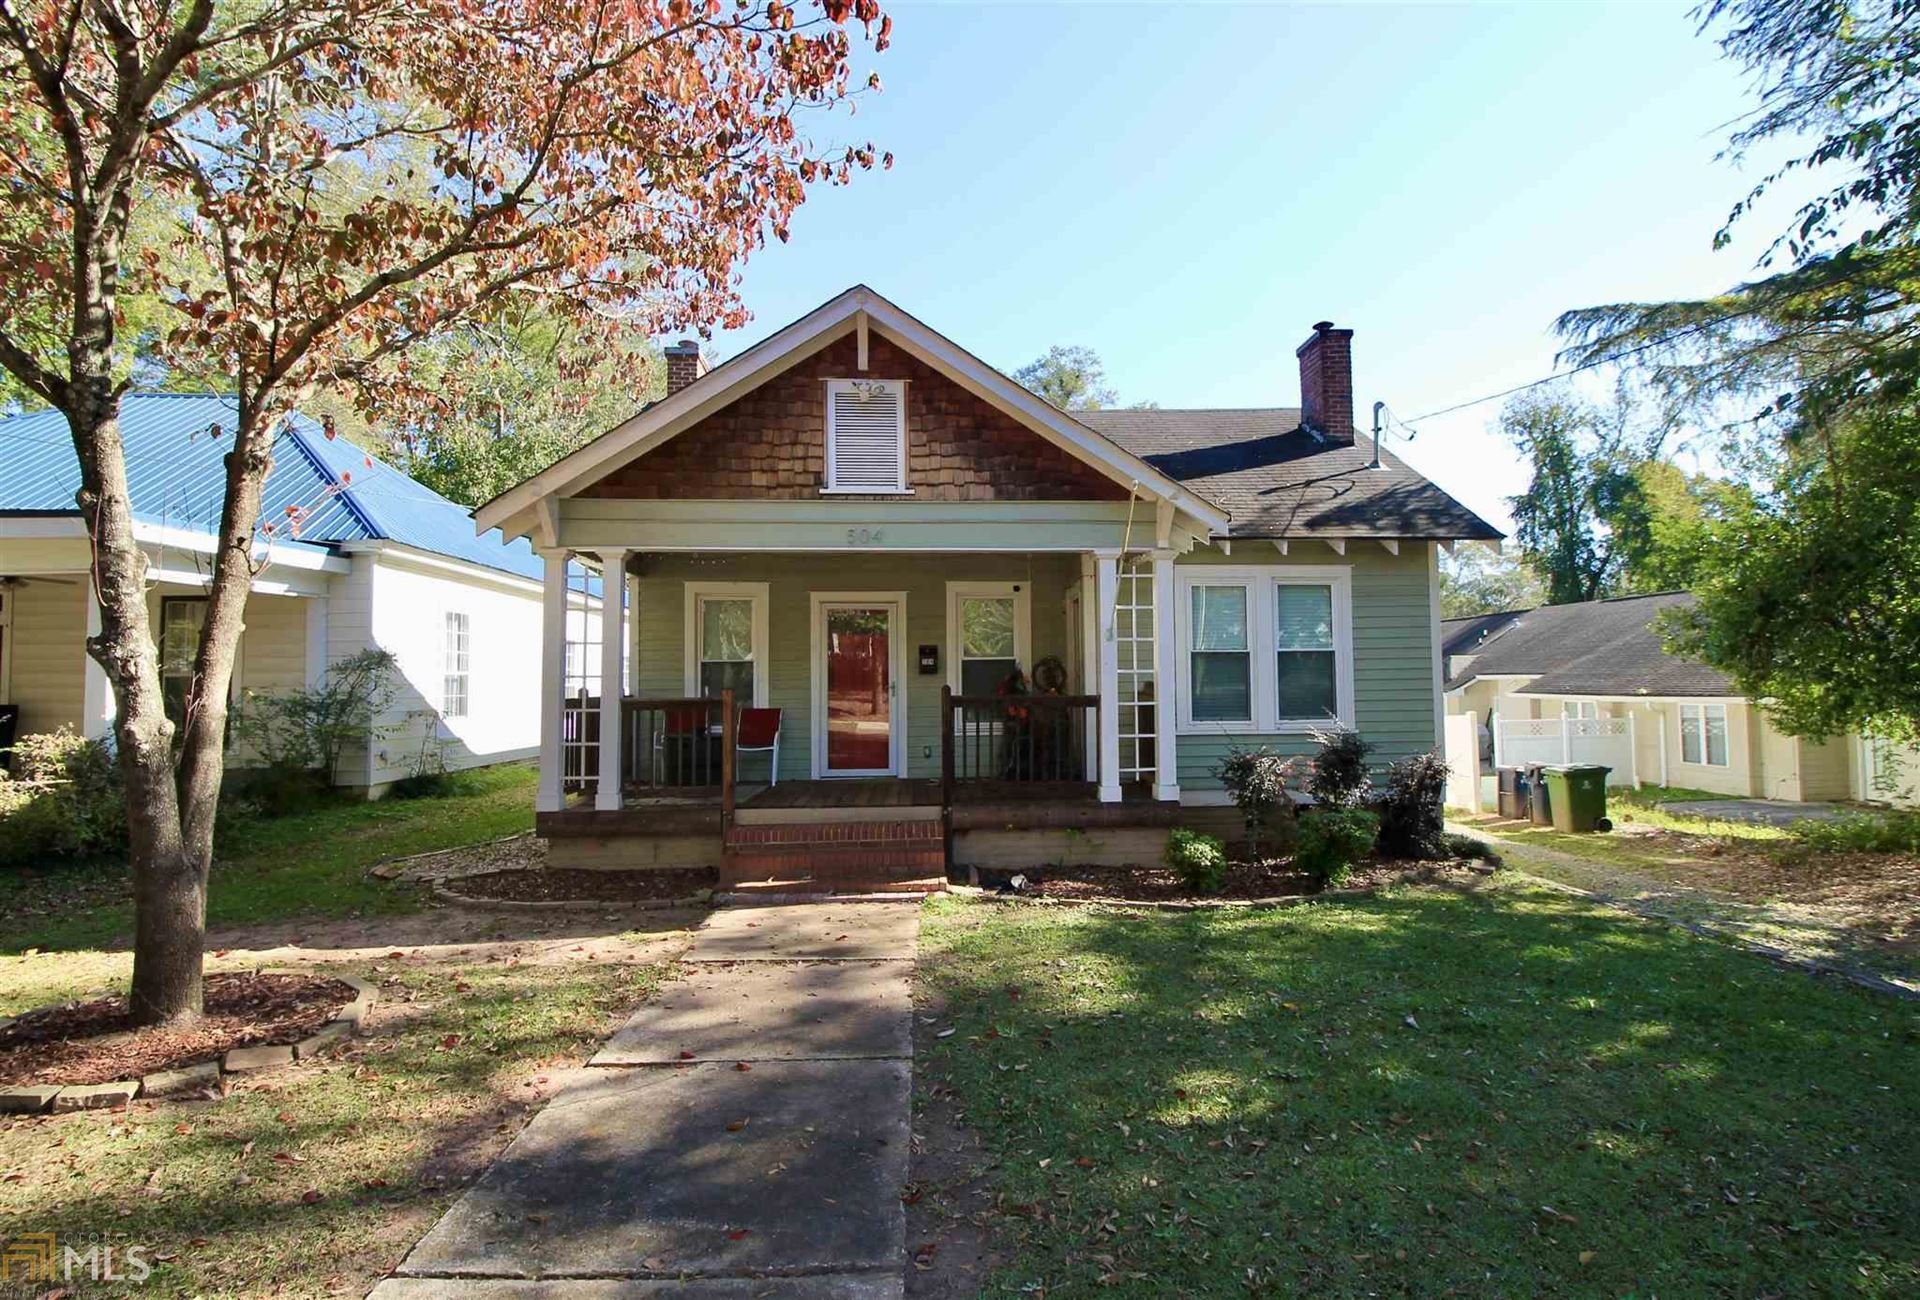 504 S 6th ST, Griffin, GA 30223 - MLS#: 8893488